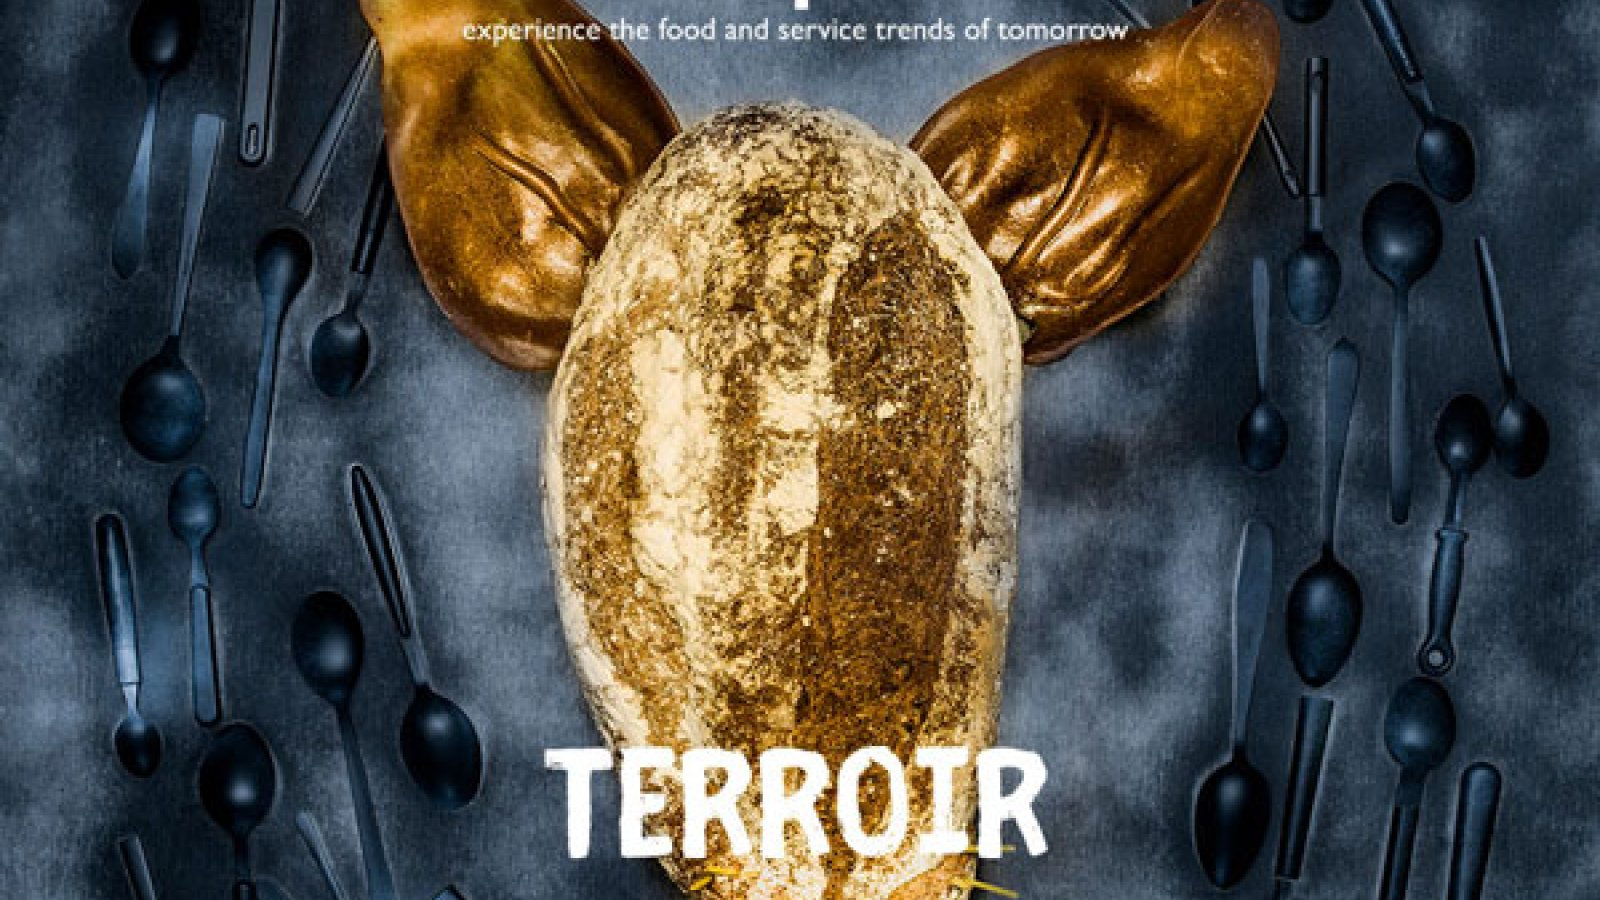 New magazine: Terroir